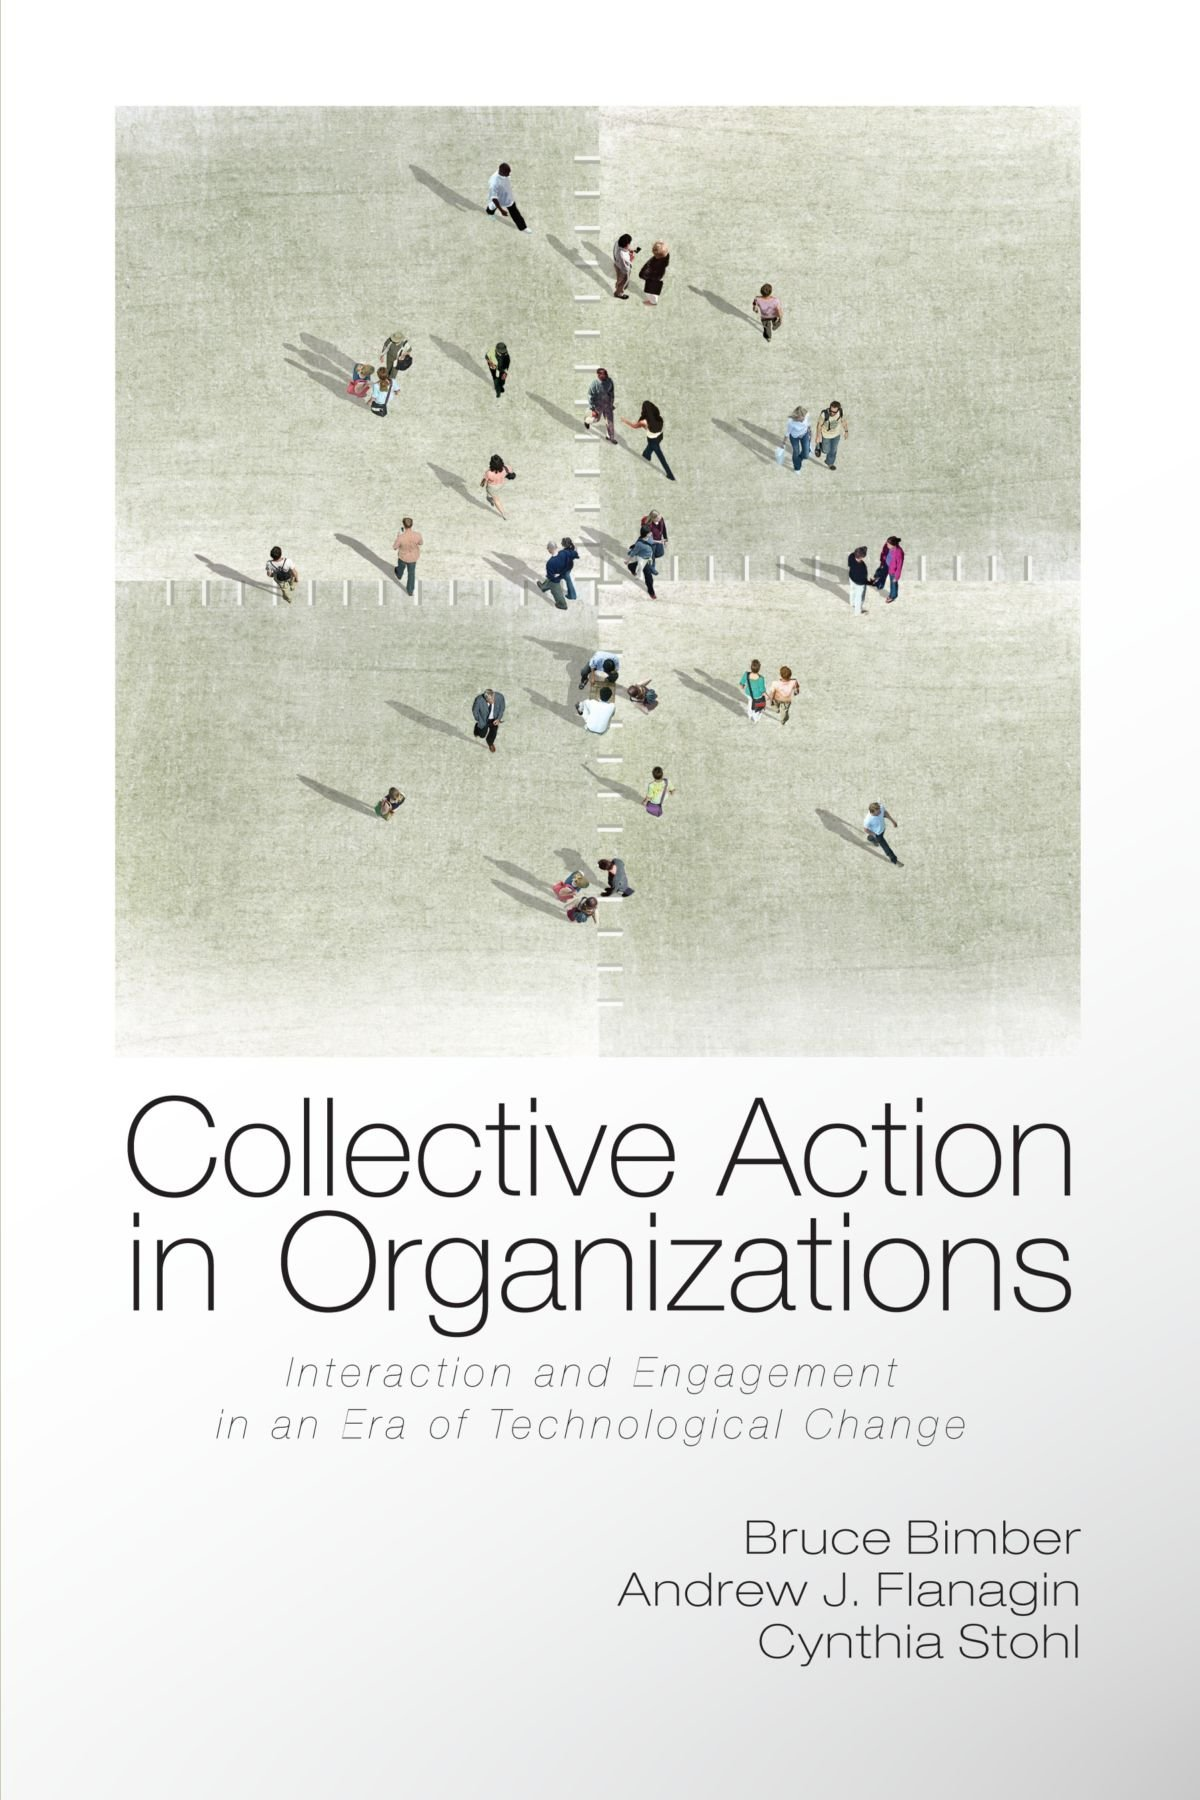 Collective Action in Organizations: Interaction and Engagement in an Era of Technological Change (Communication, Society and Politics) PDF